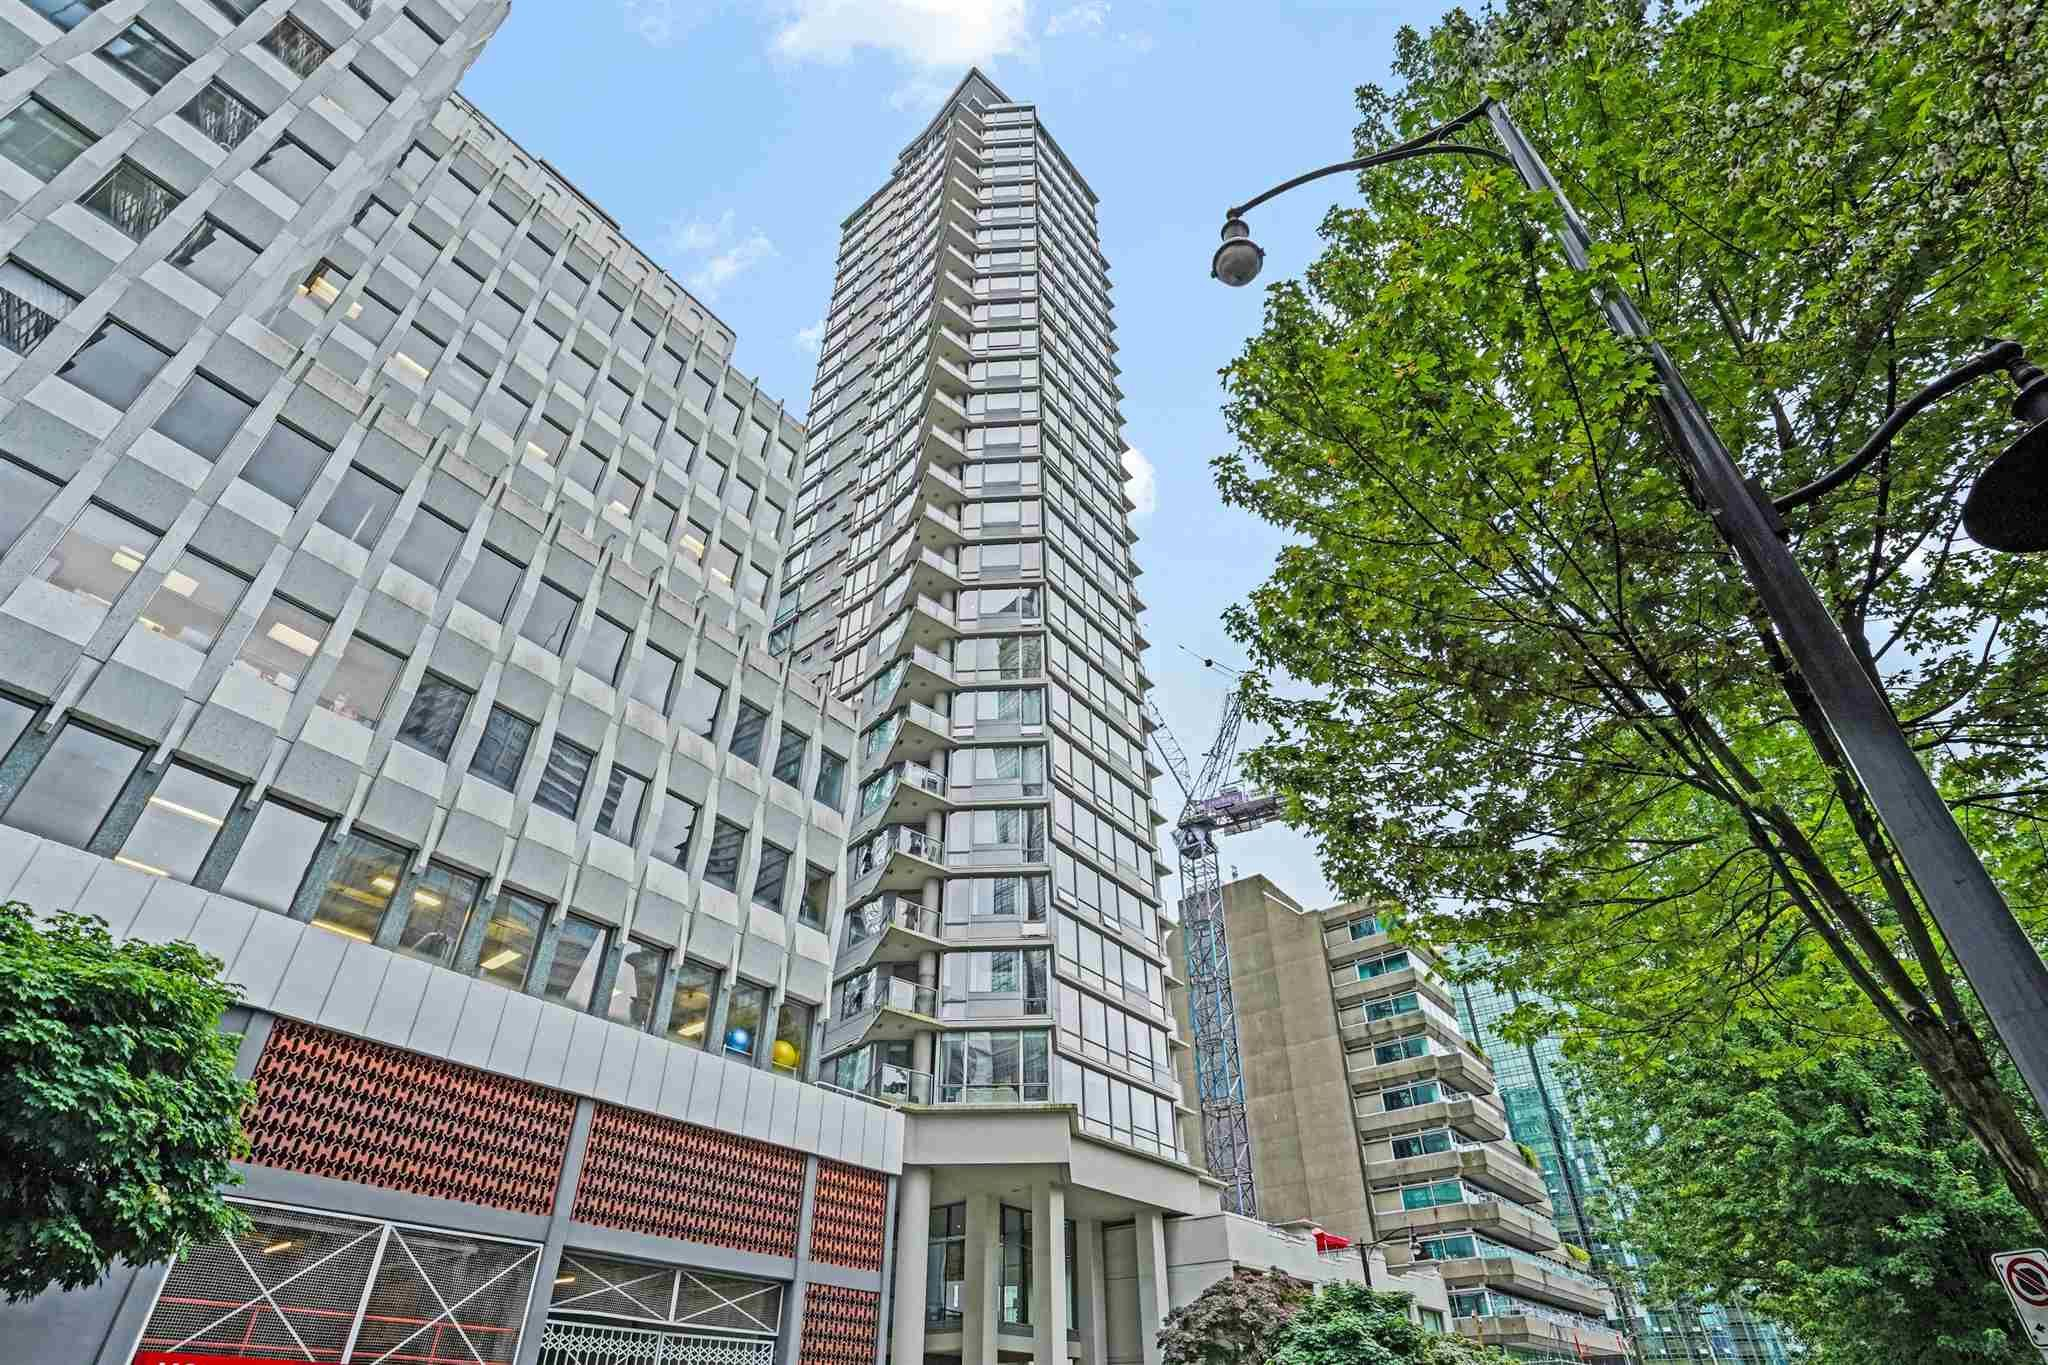 """Main Photo: 304 1228 W HASTINGS Street in Vancouver: Coal Harbour Condo for sale in """"Palladio"""" (Vancouver West)  : MLS®# R2594596"""